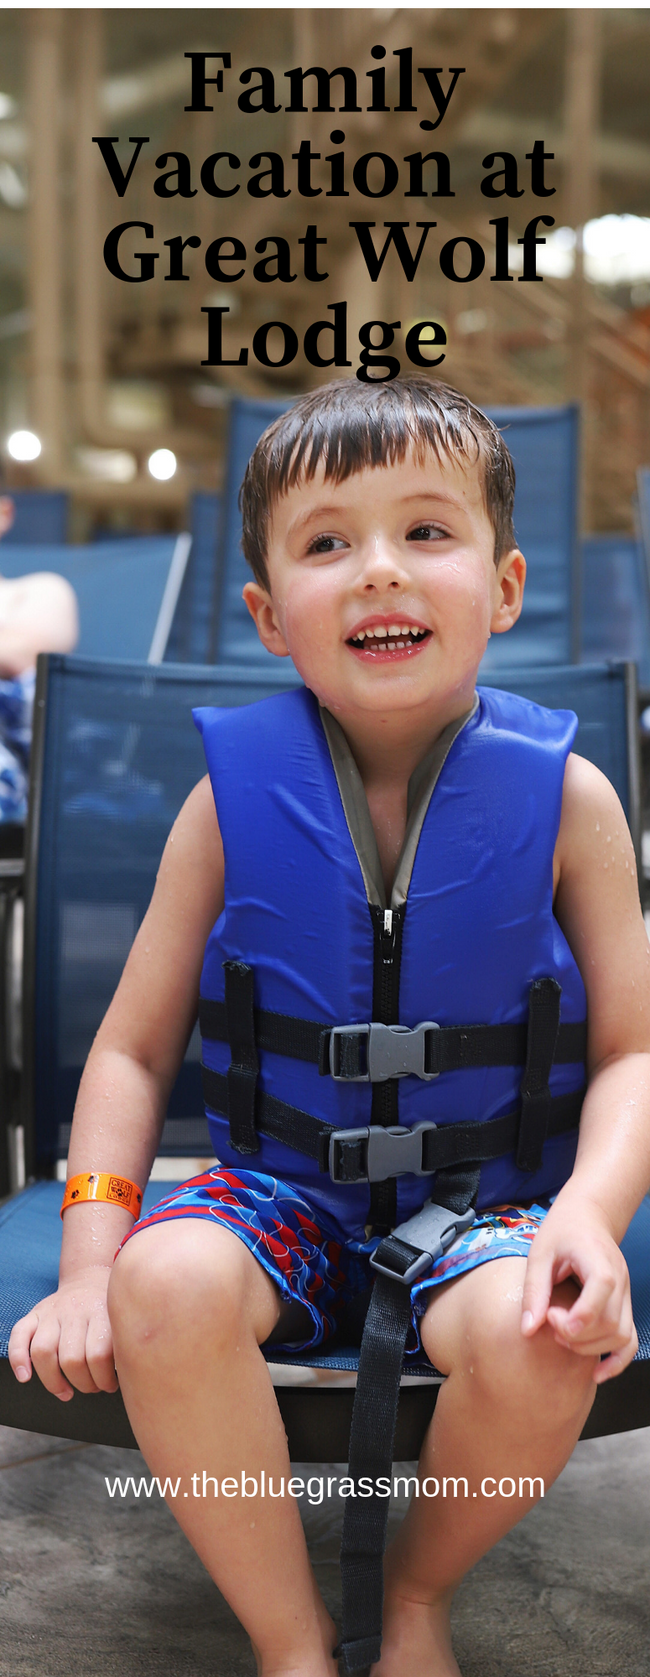 A memorable family vacation at Great Wolf Lodge